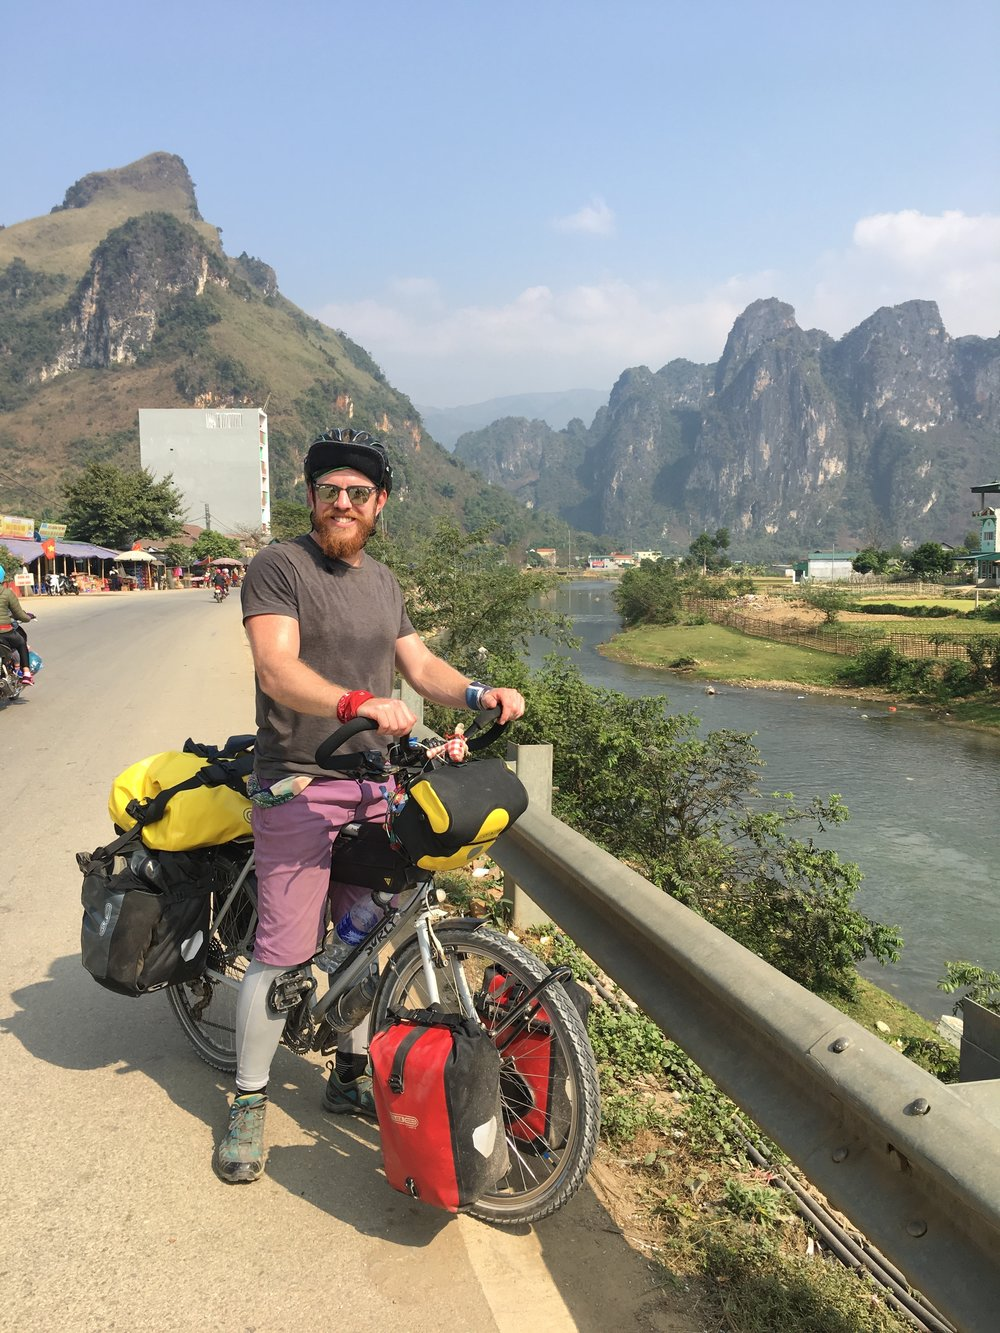 Tuan Giao. Some of the most stunning scenery I've ever seen and been amongst. Even with an achilles in serious trouble you couldn't wipe the smile from my face.